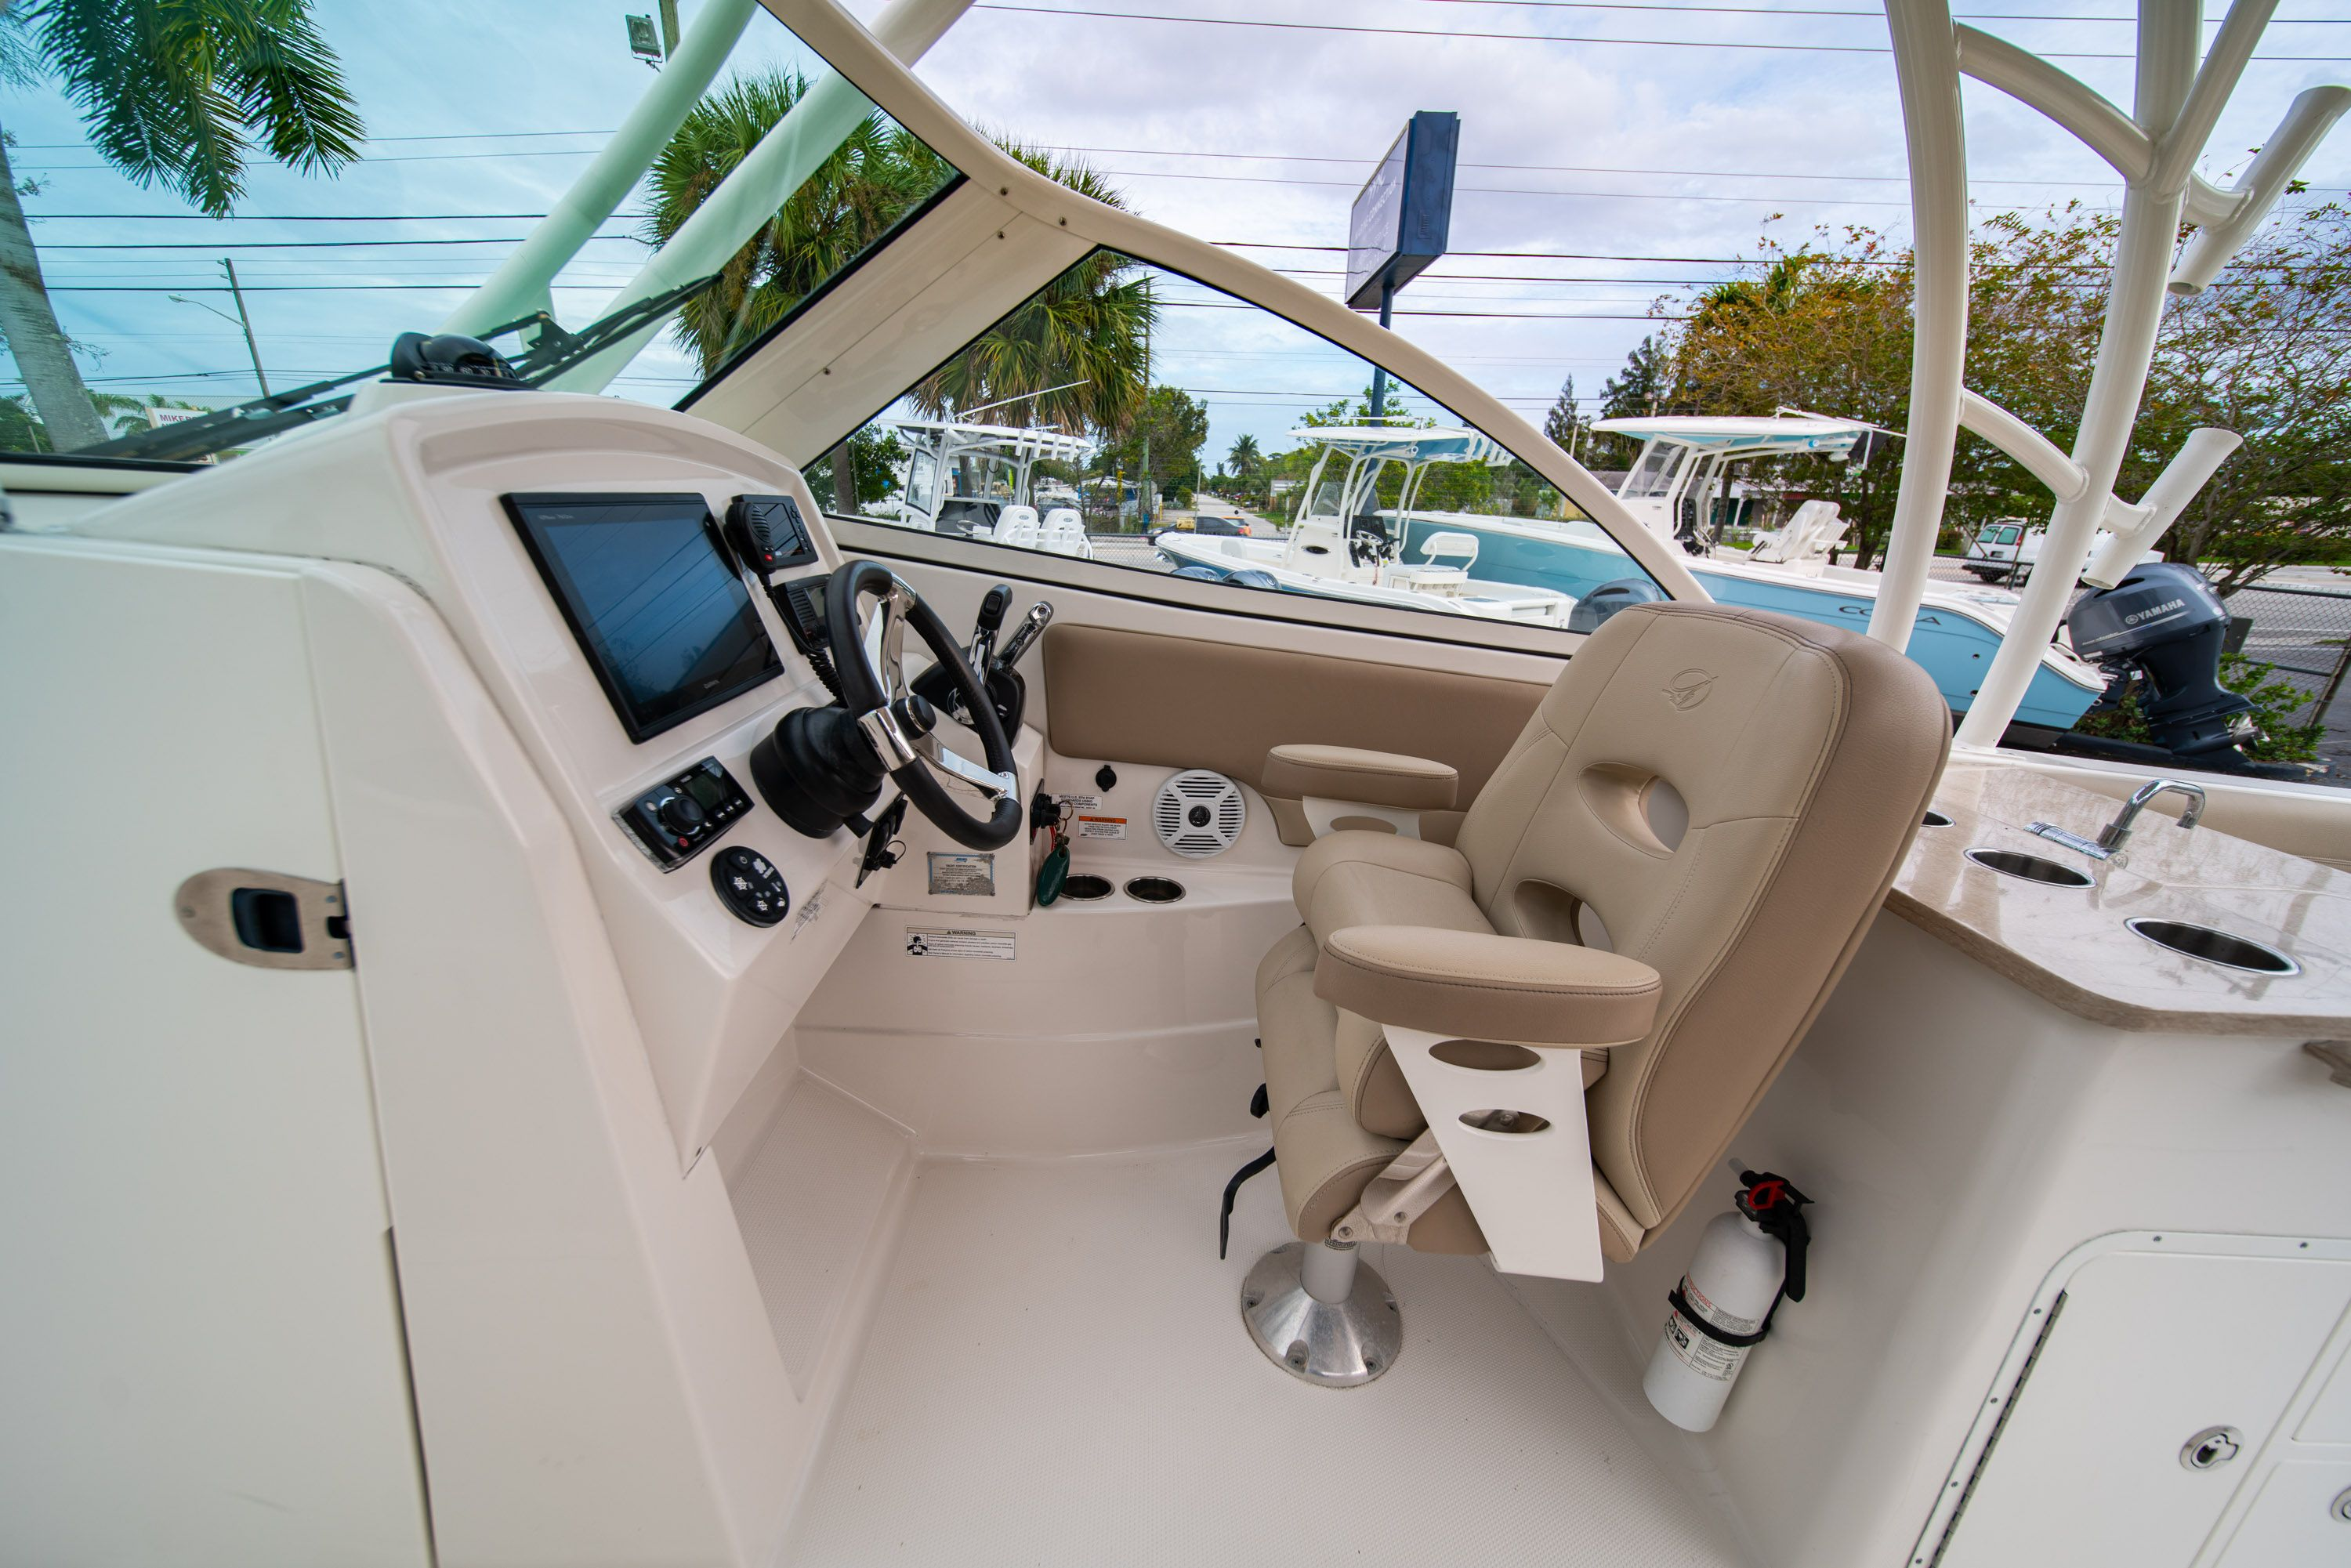 Thumbnail 38 for Used 2017 Sailfish 275 Dual Console boat for sale in West Palm Beach, FL